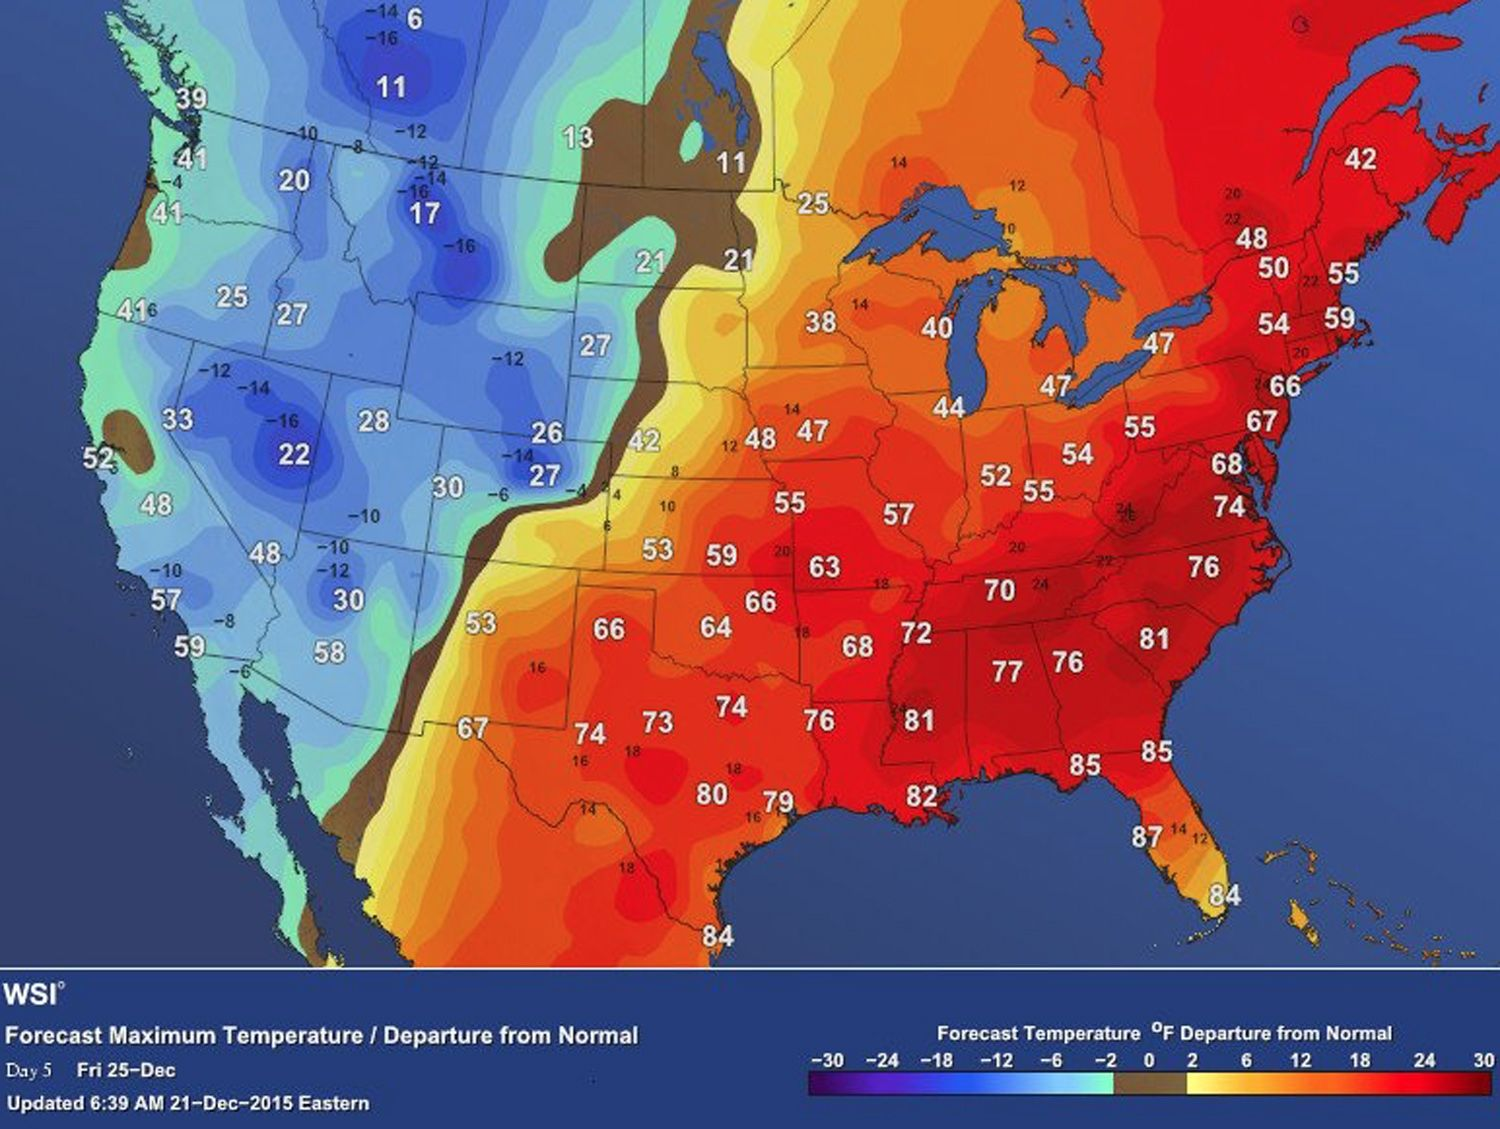 Weather Maps Illustrate The Strangest Christmas Weather In History - Global weather map